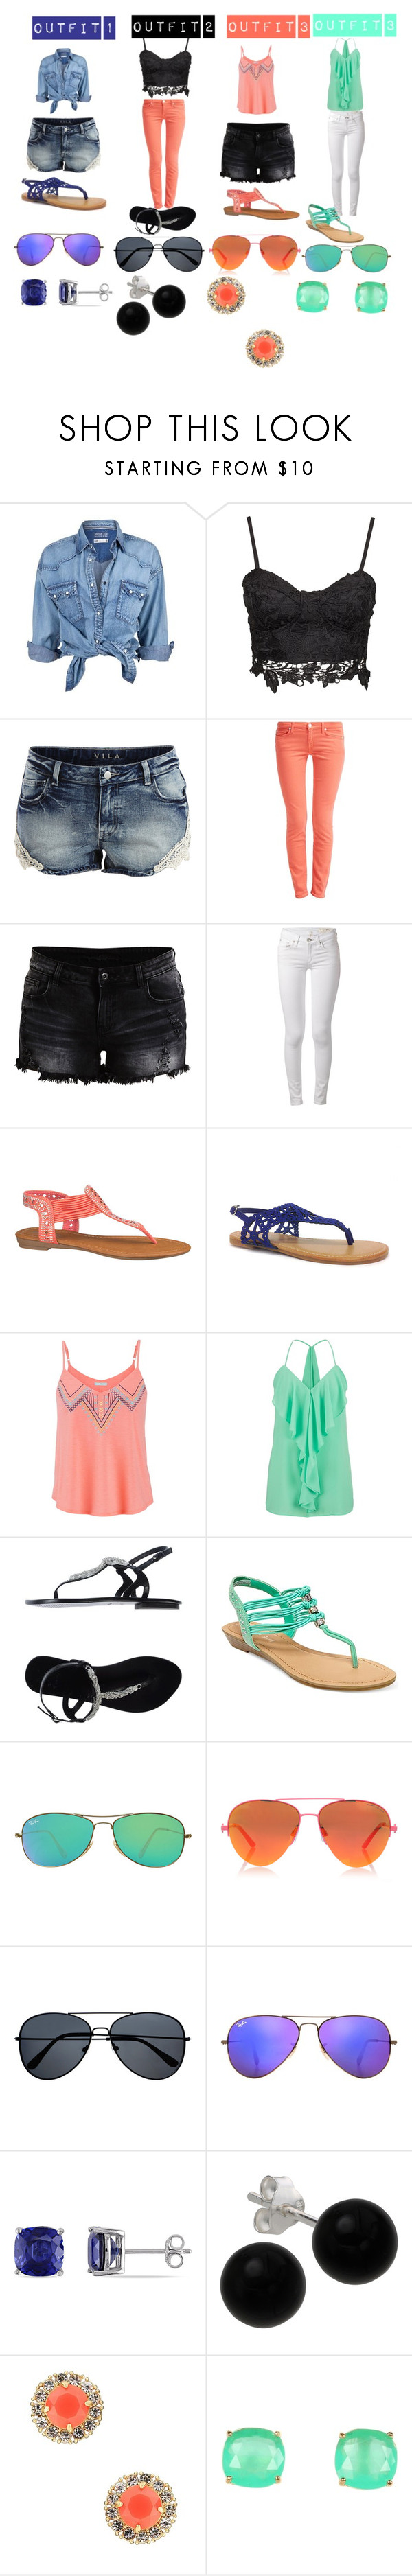 """Untitled #622"" by samantha-myers-2 ❤ liked on Polyvore featuring Soul Cal, VILA, 7 For All Mankind, rag & bone, maurices, Bamboo, Bryan Blake, Madden Girl, Ray-Ban and Kurt Geiger"